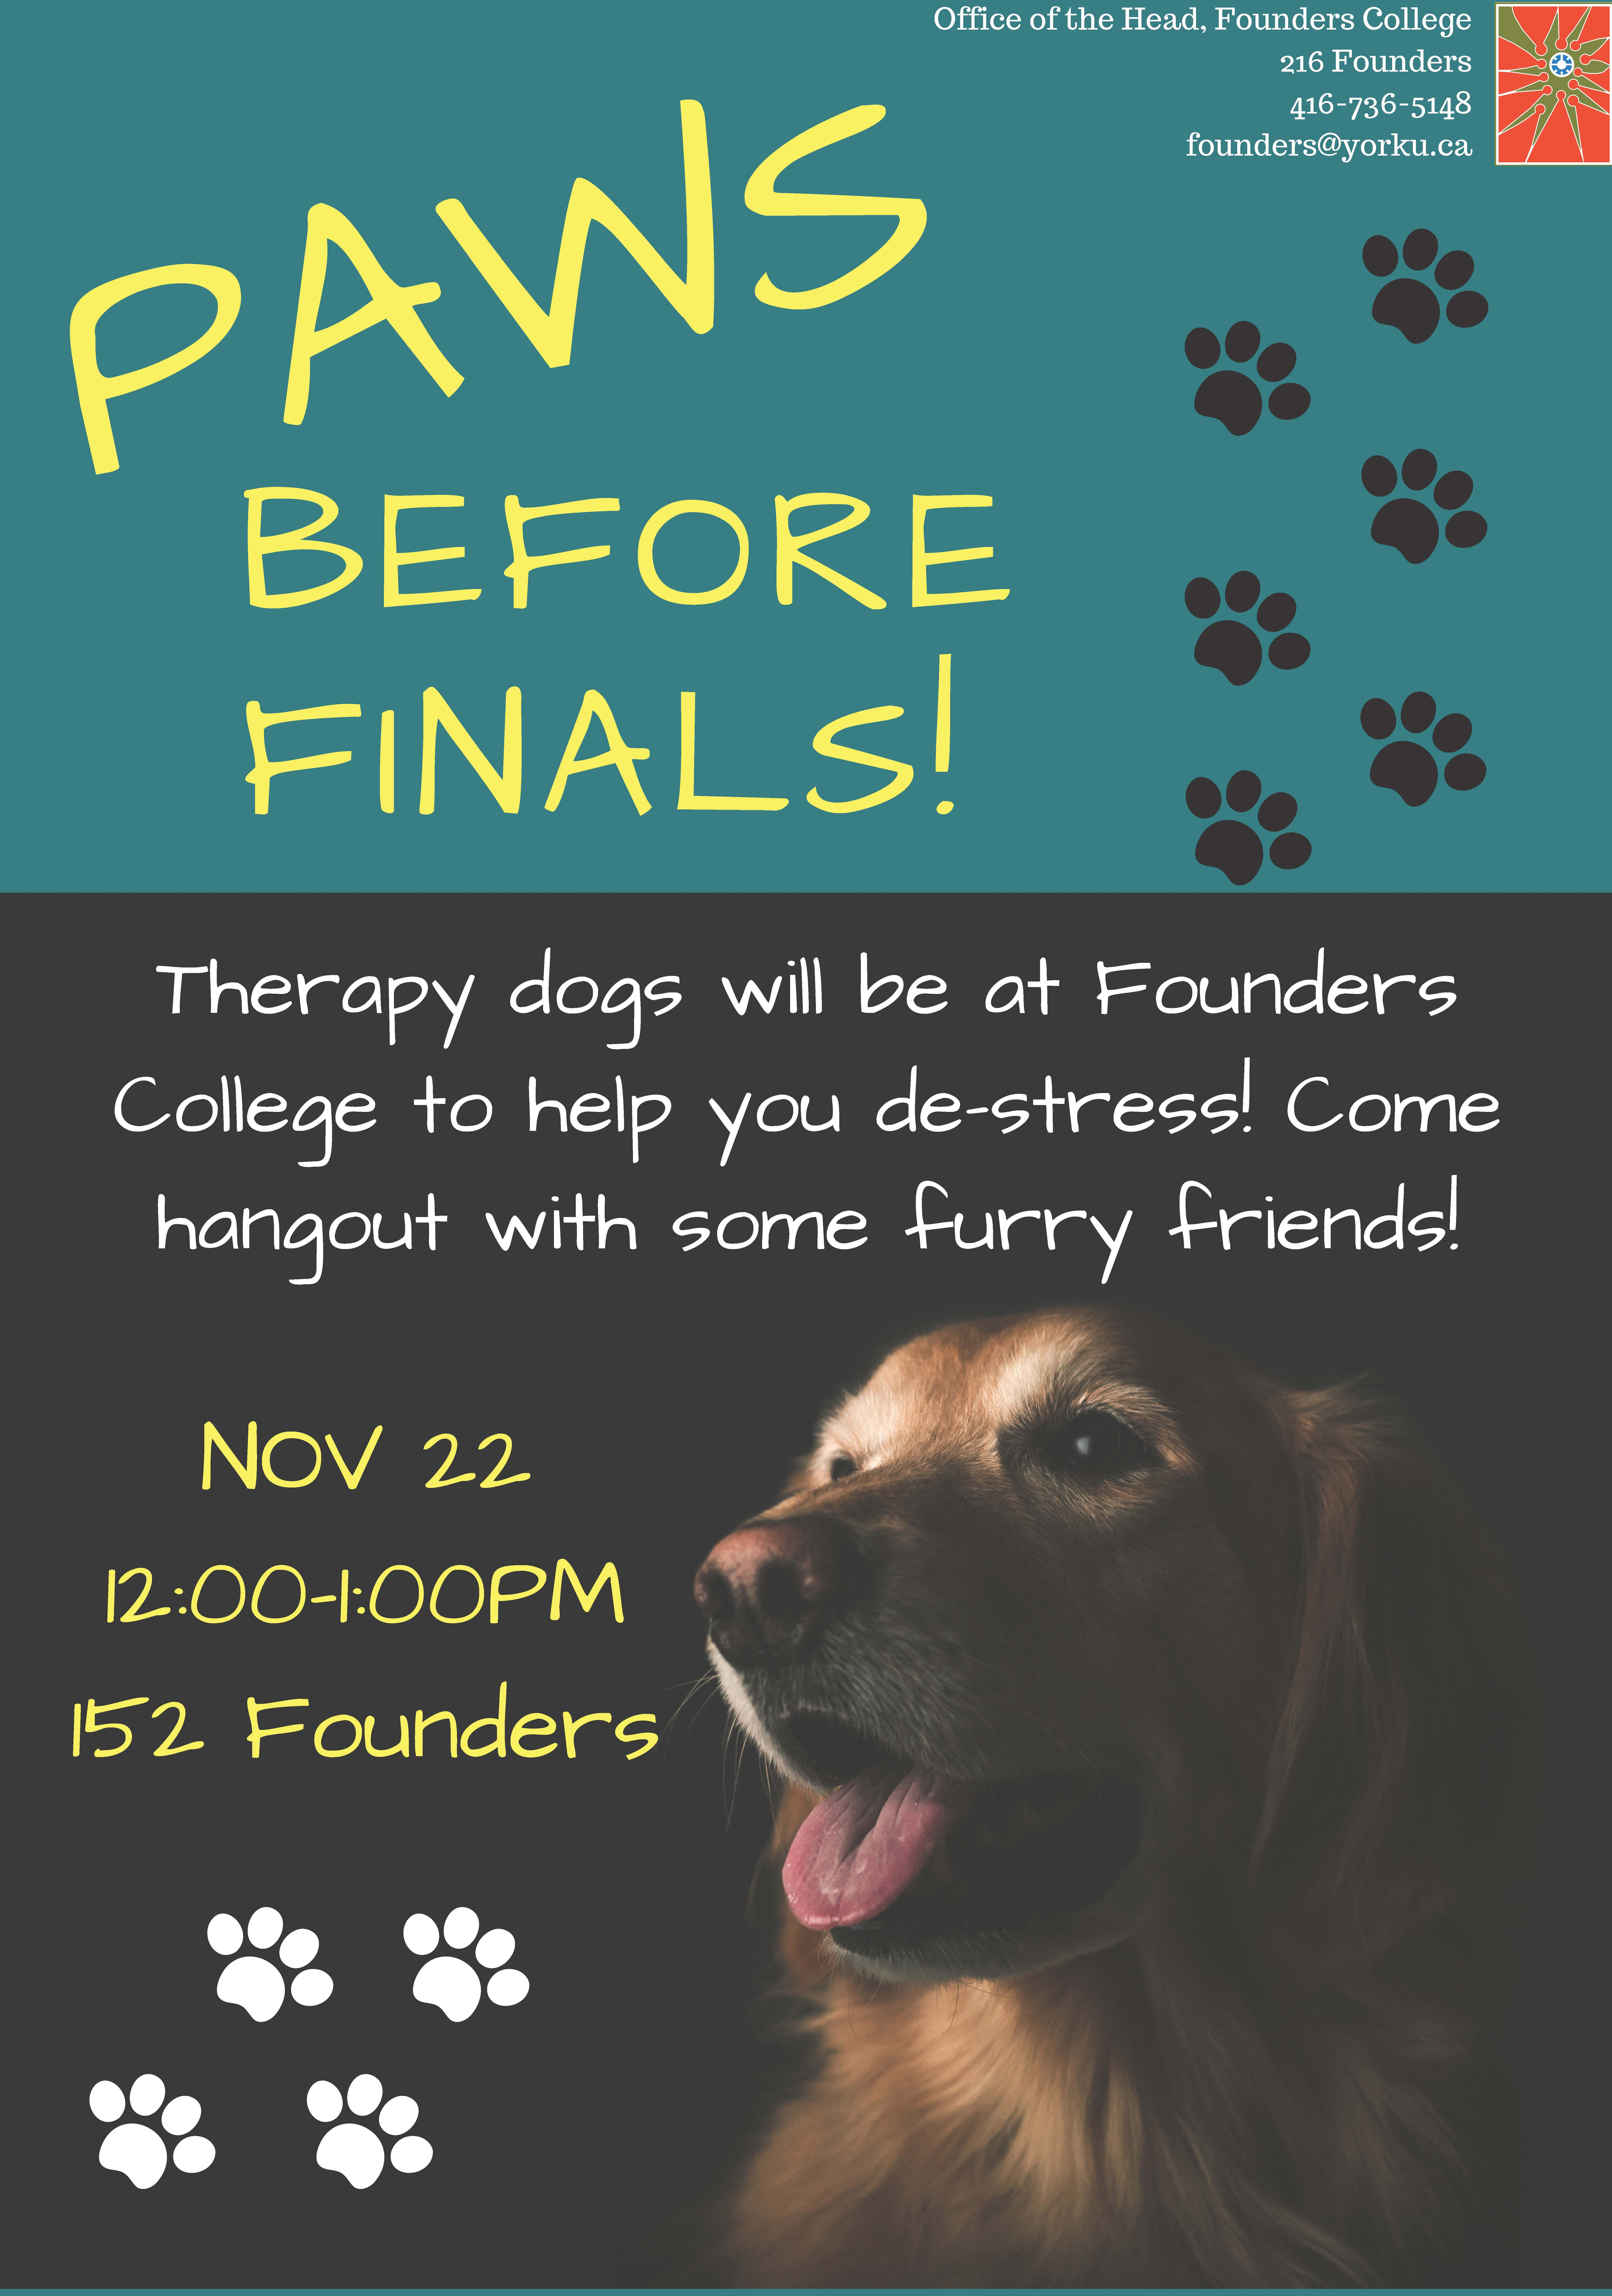 PAWS BEFORE FINALS!